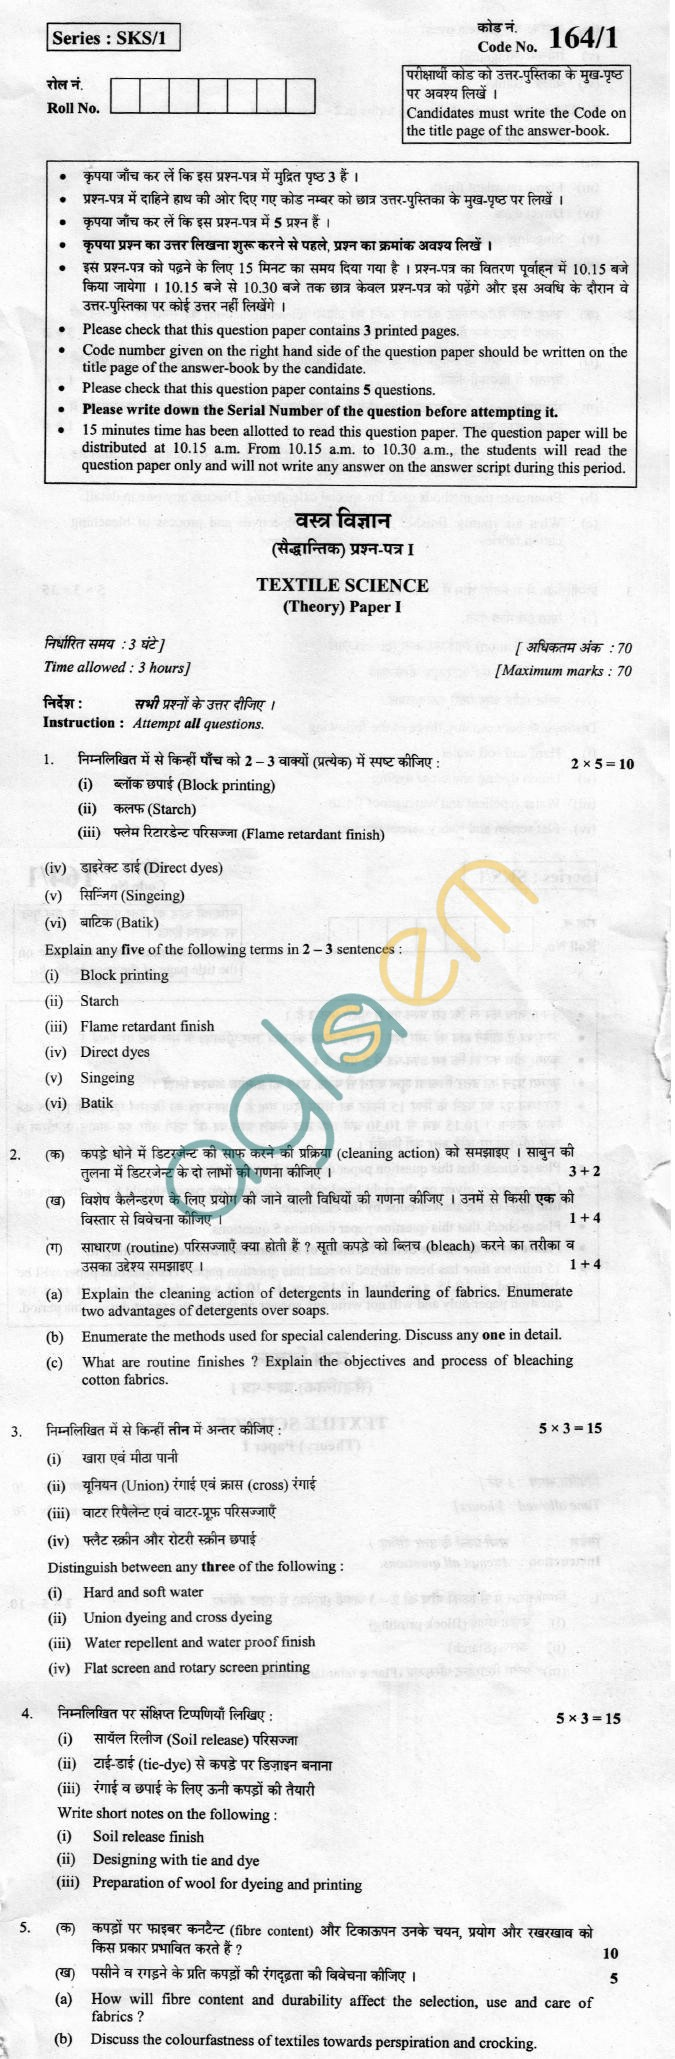 CBSE Board Exam 2013 Class XII Question Paper -Textile Science Paper I